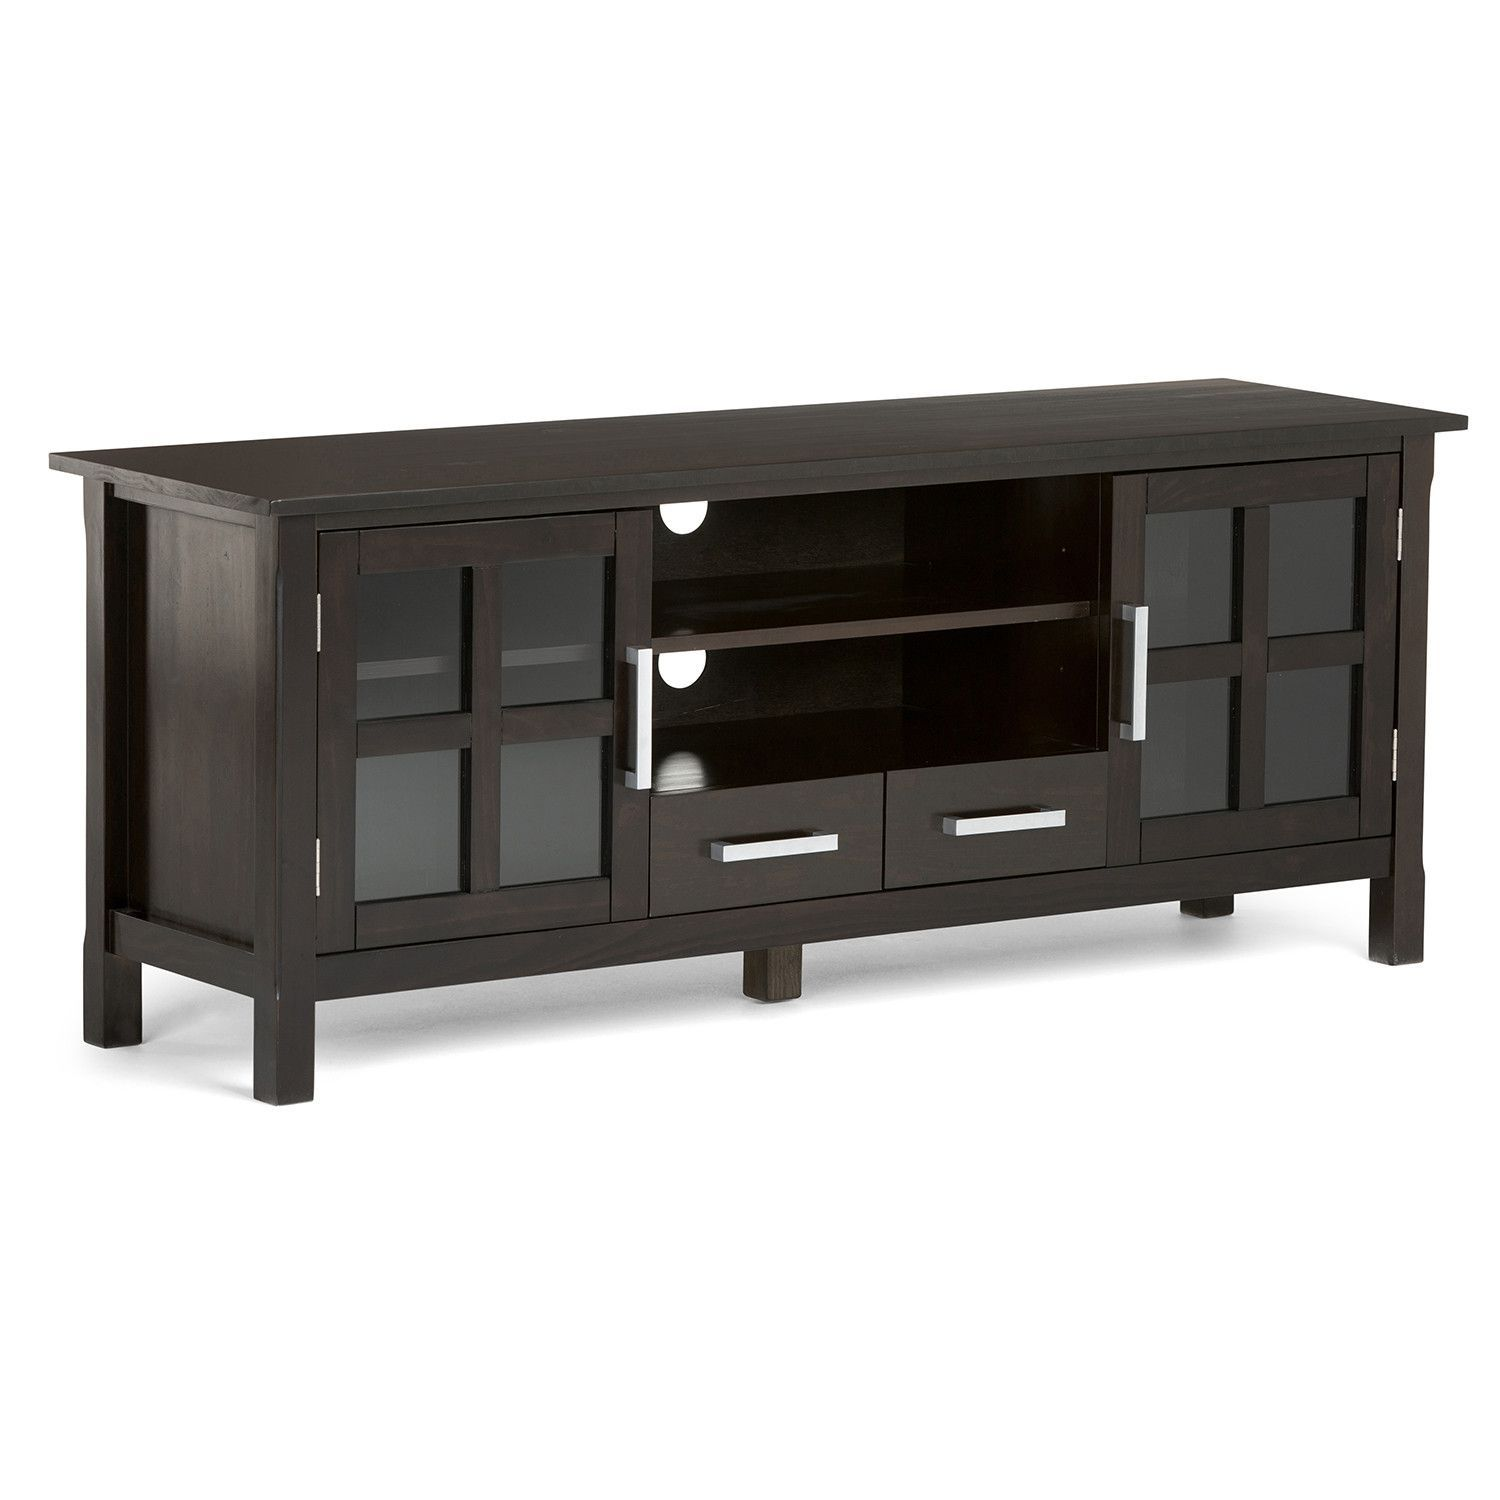 Kitchener 60 x 17 x 24 inch TV Stand in Dark Walnut Brown